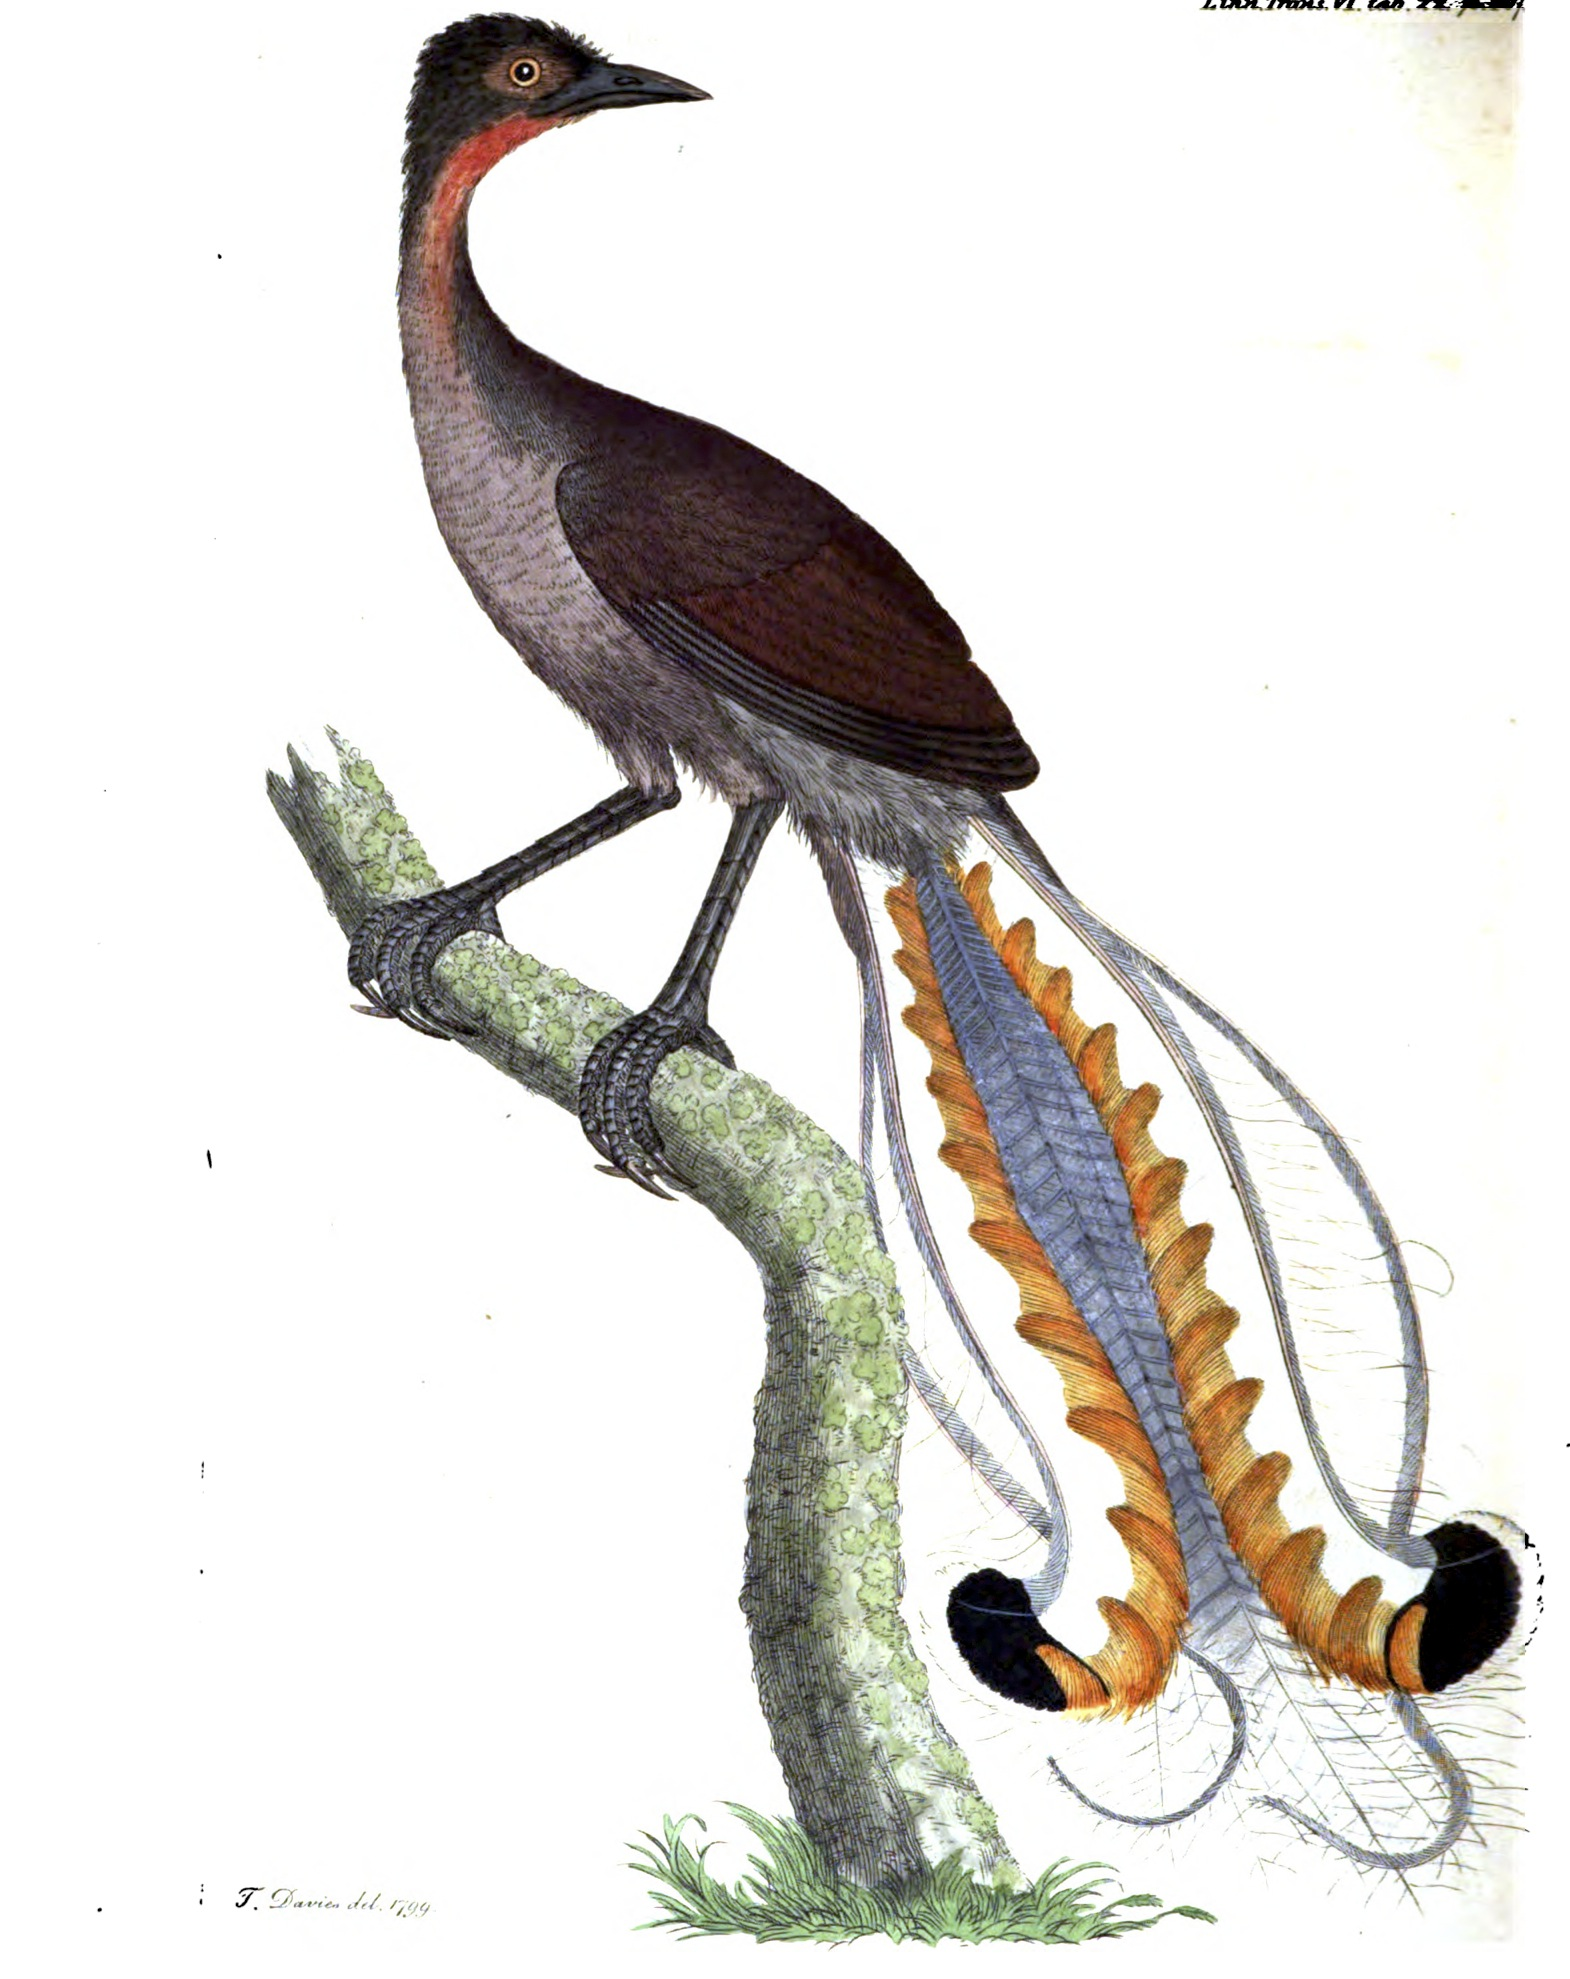 Painting of a superb lyrebird by Thomas Davies, circa 1800.